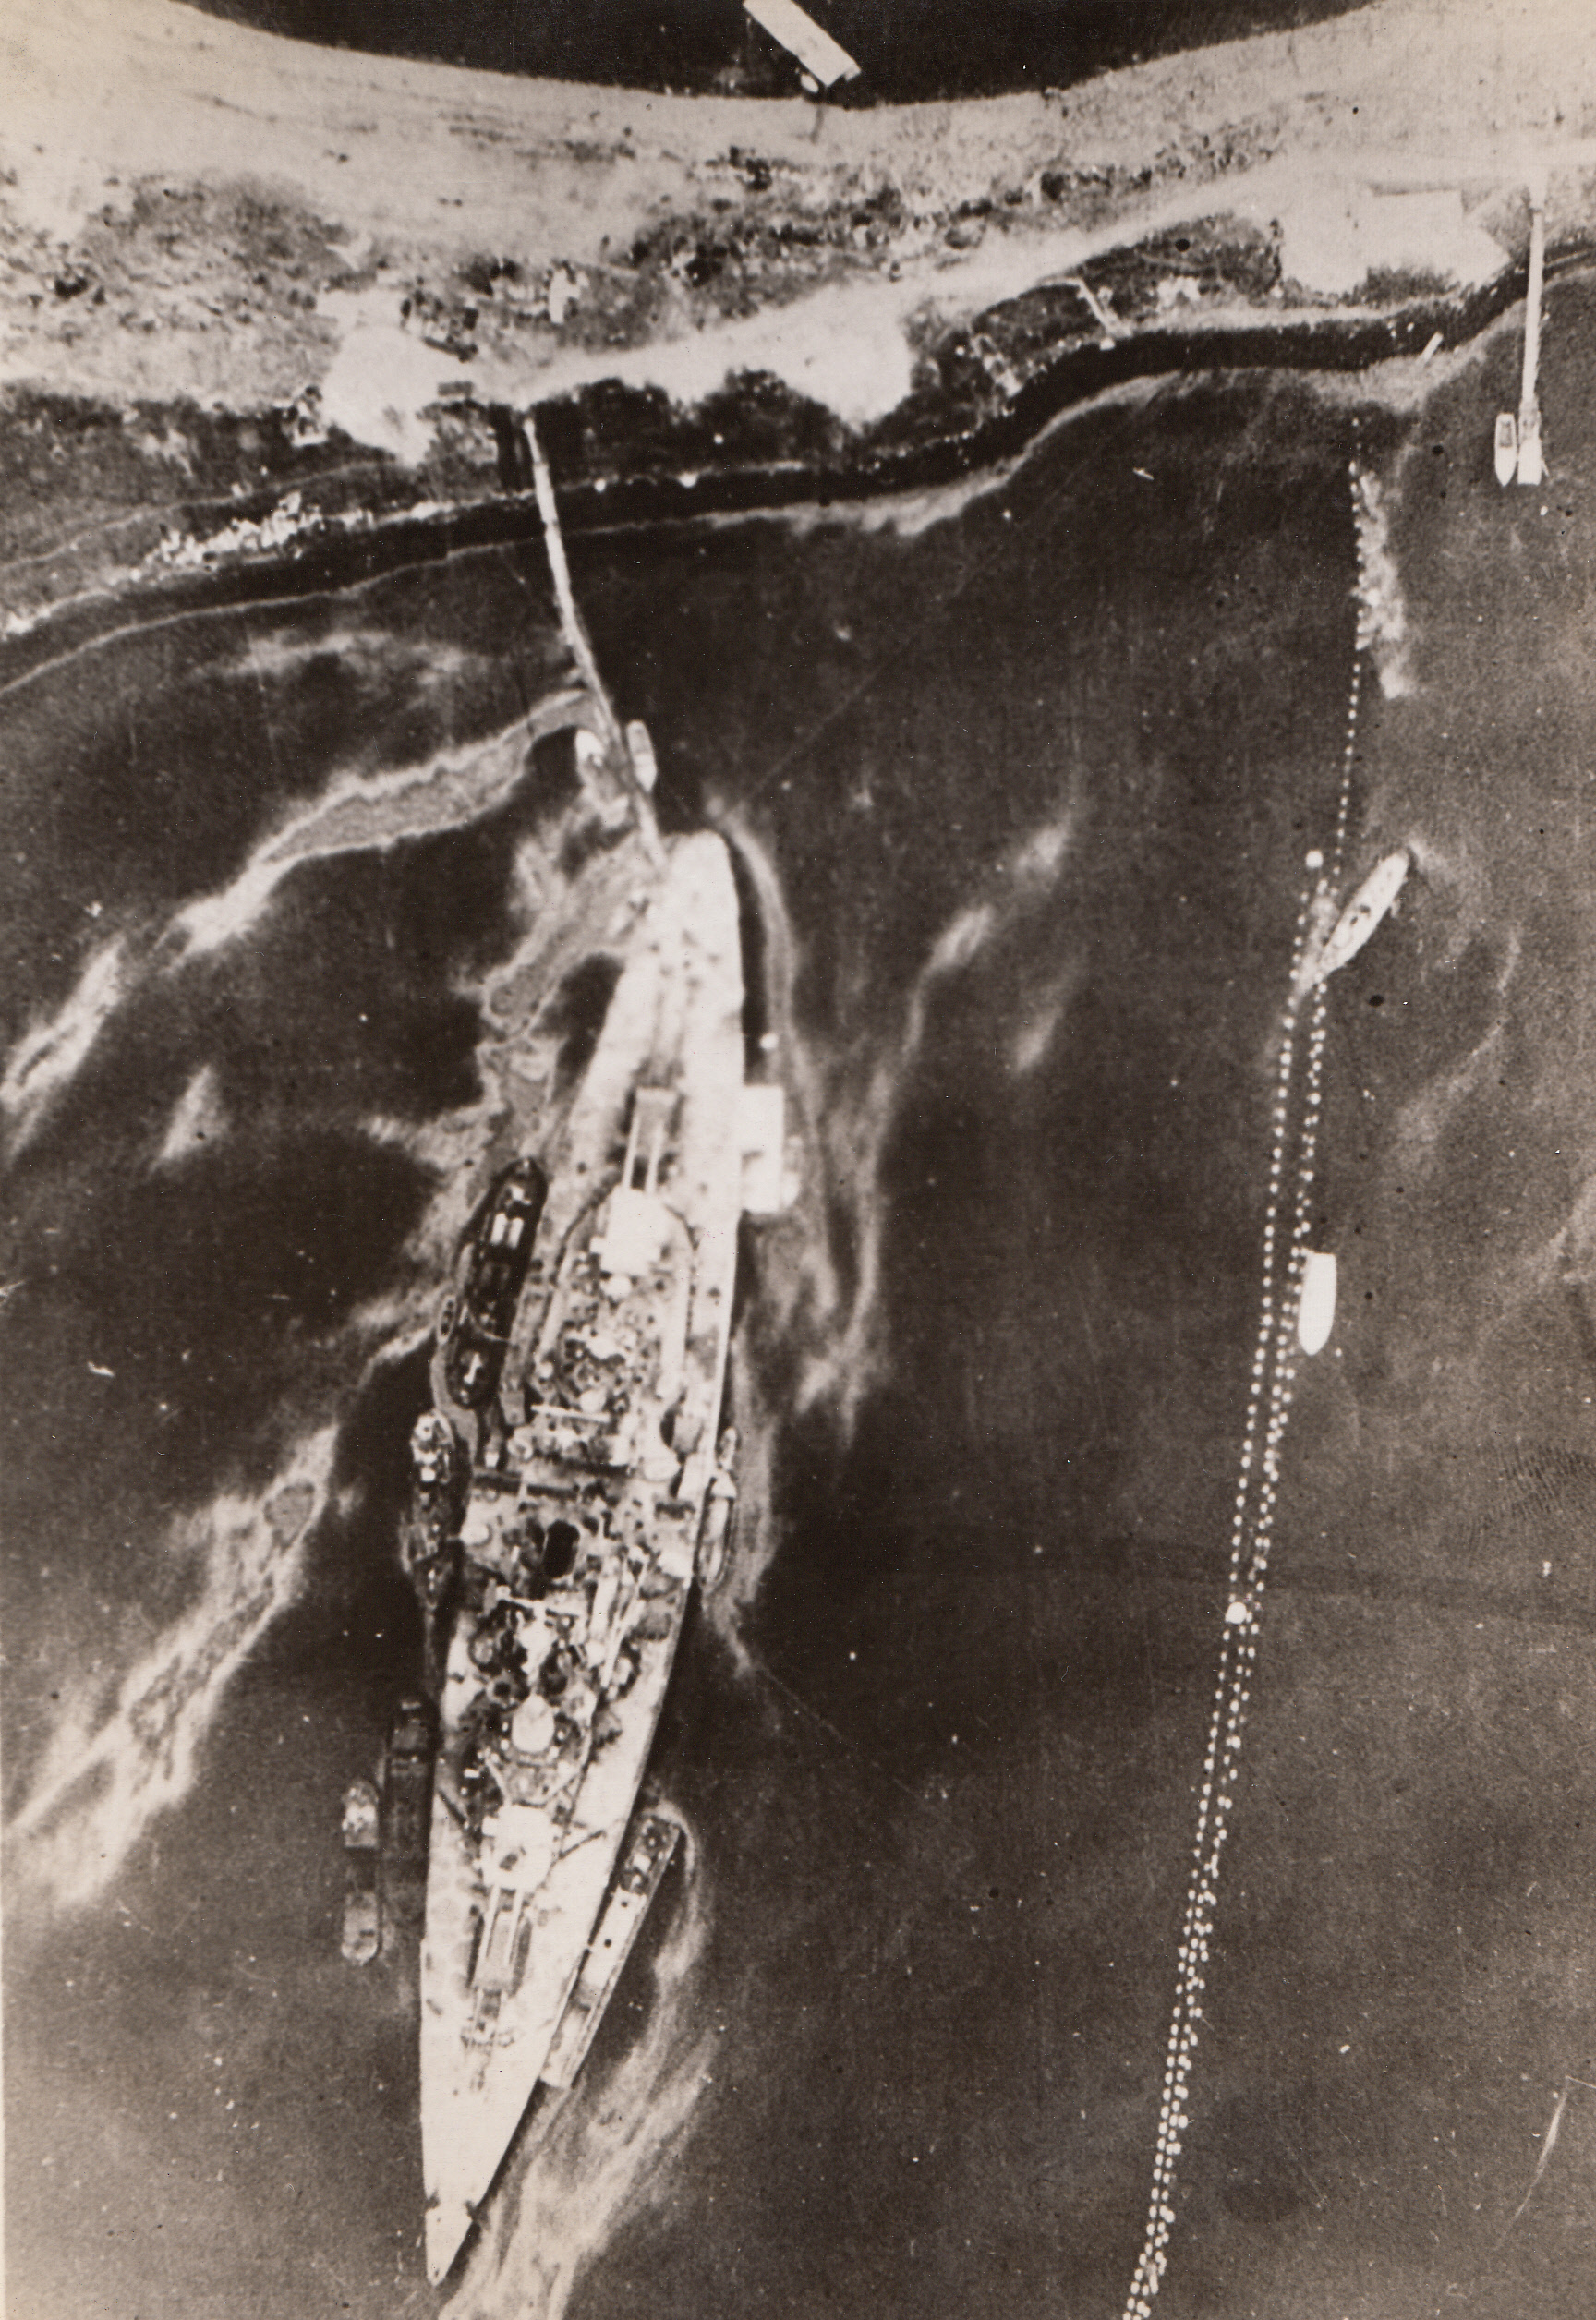 Twice-Damaged Tirpitz, 8/12/1944. NORWAY – This recent photo of the Tirpitz at her moorings in Kaafjord, Norway, was taken by an RAF reconnaissance plane of the Coastal Command. The ship was damaged in Kaafjord on two occasions, once by British submarines on Sept. 22, 1944, and again by Fleet Air Arm attack on April 3, 1944. Some of the damage has evidently been repaired, but the starboard boat and aircraft crane are missing.;